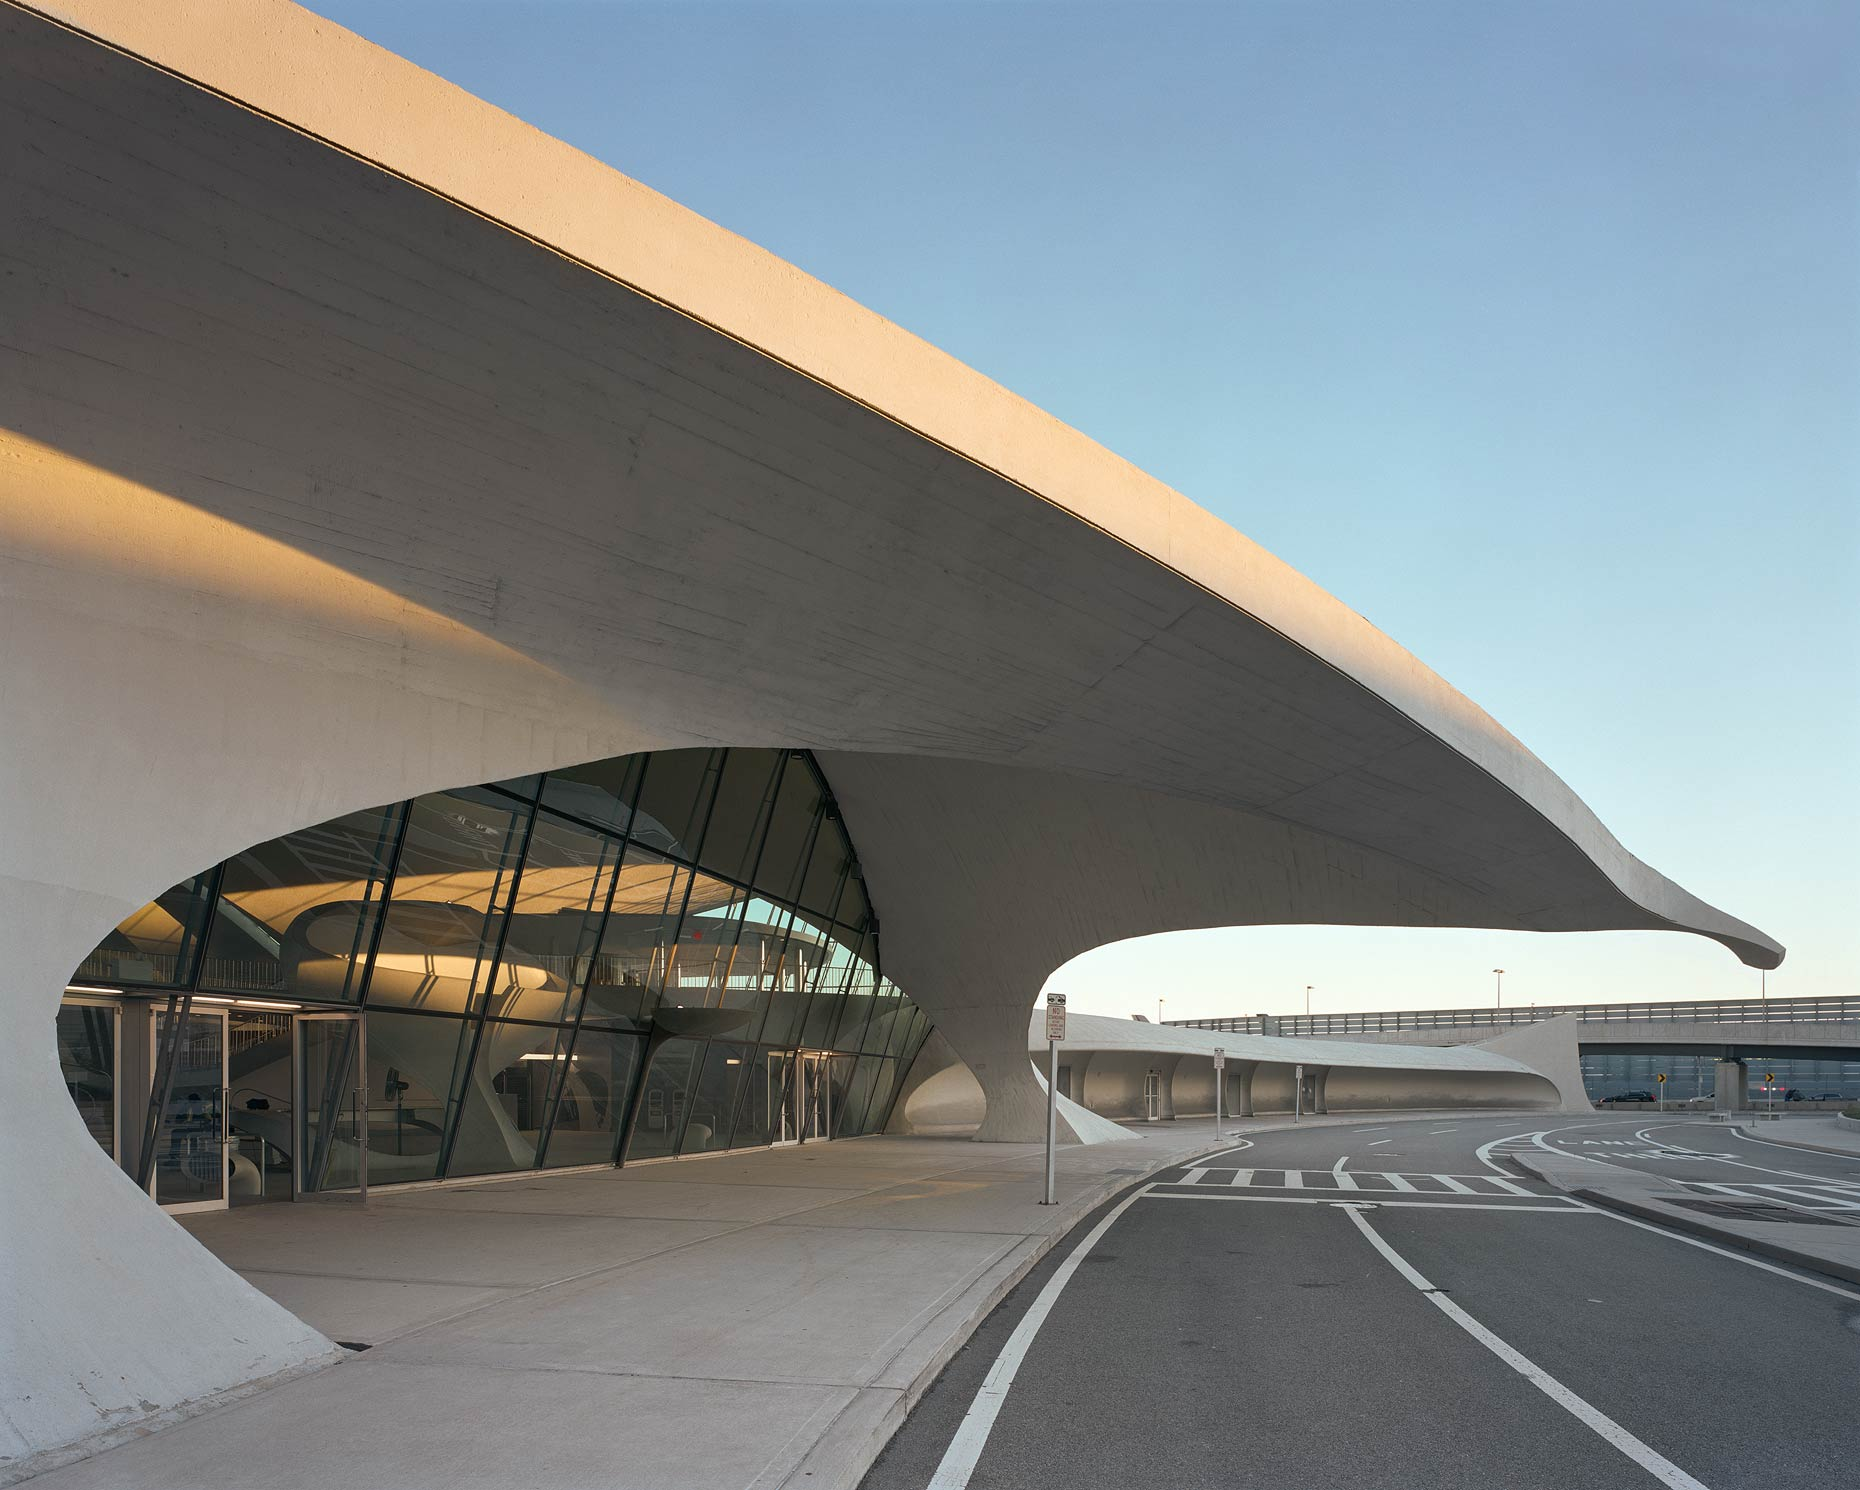 TWA Terminal, JFK International Airport, Queens, New York